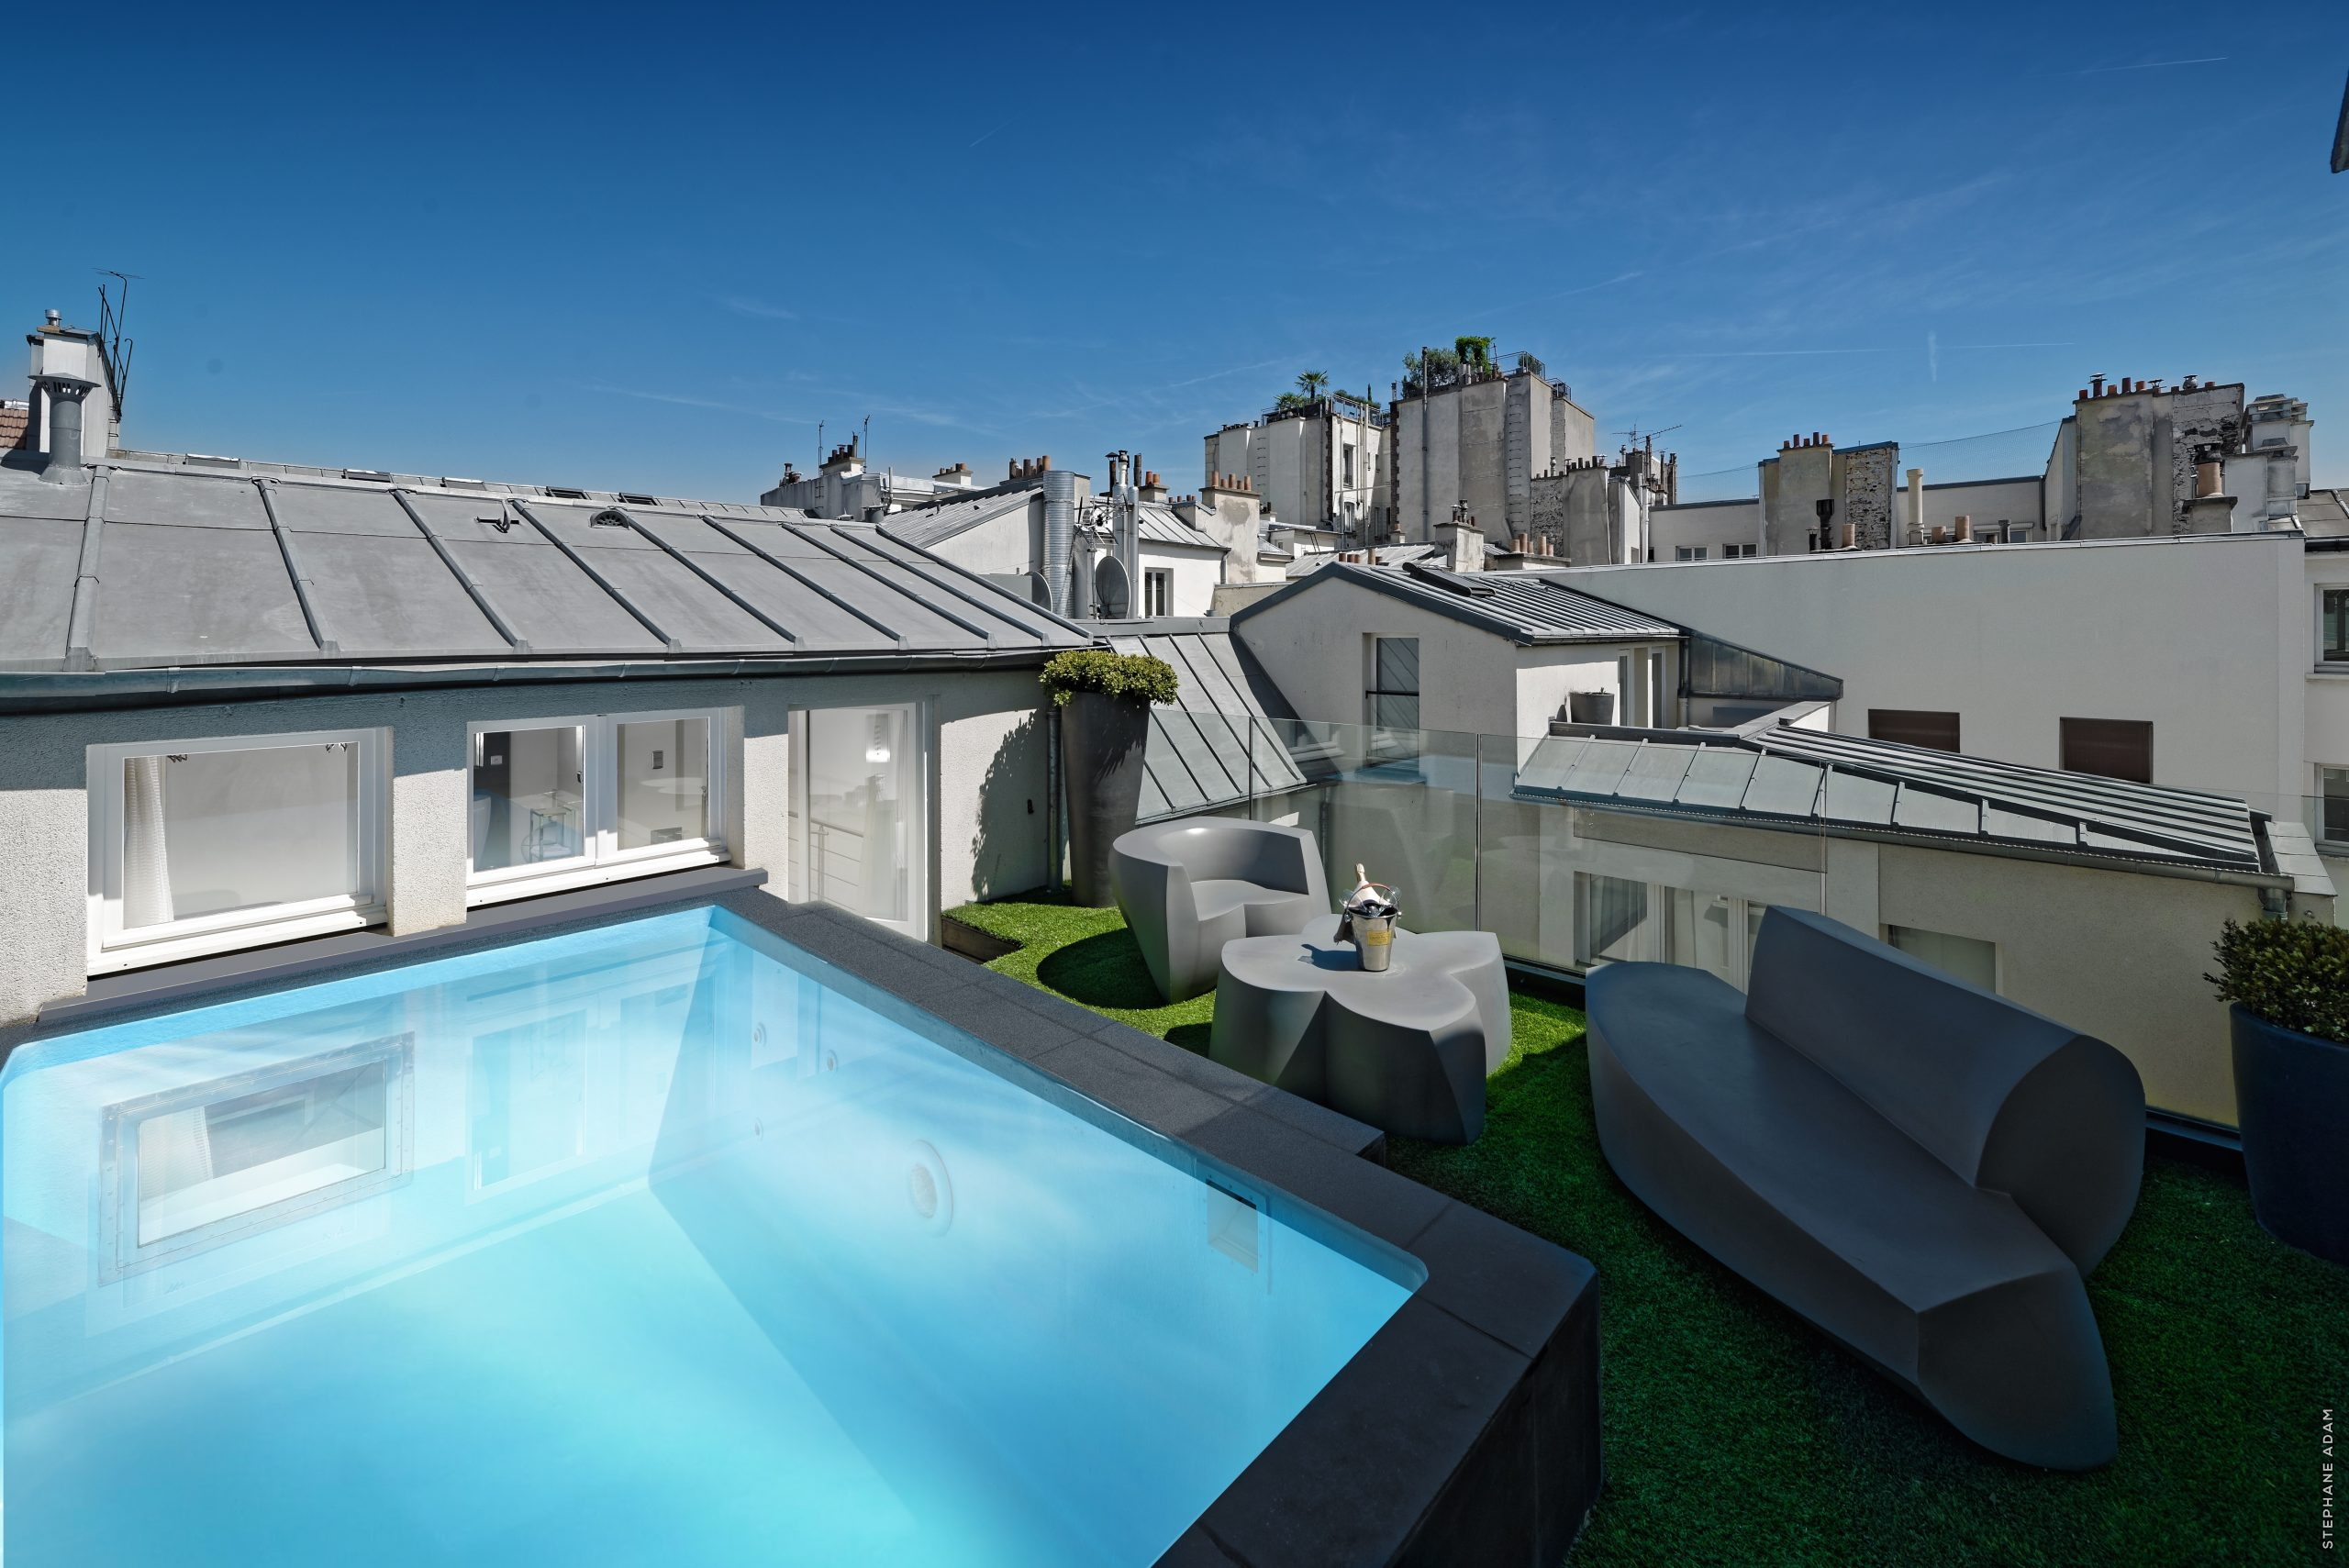 Hôtel 1K Paris **** | Hotel Paris 3 | Official Website à Hotel Paris Piscine